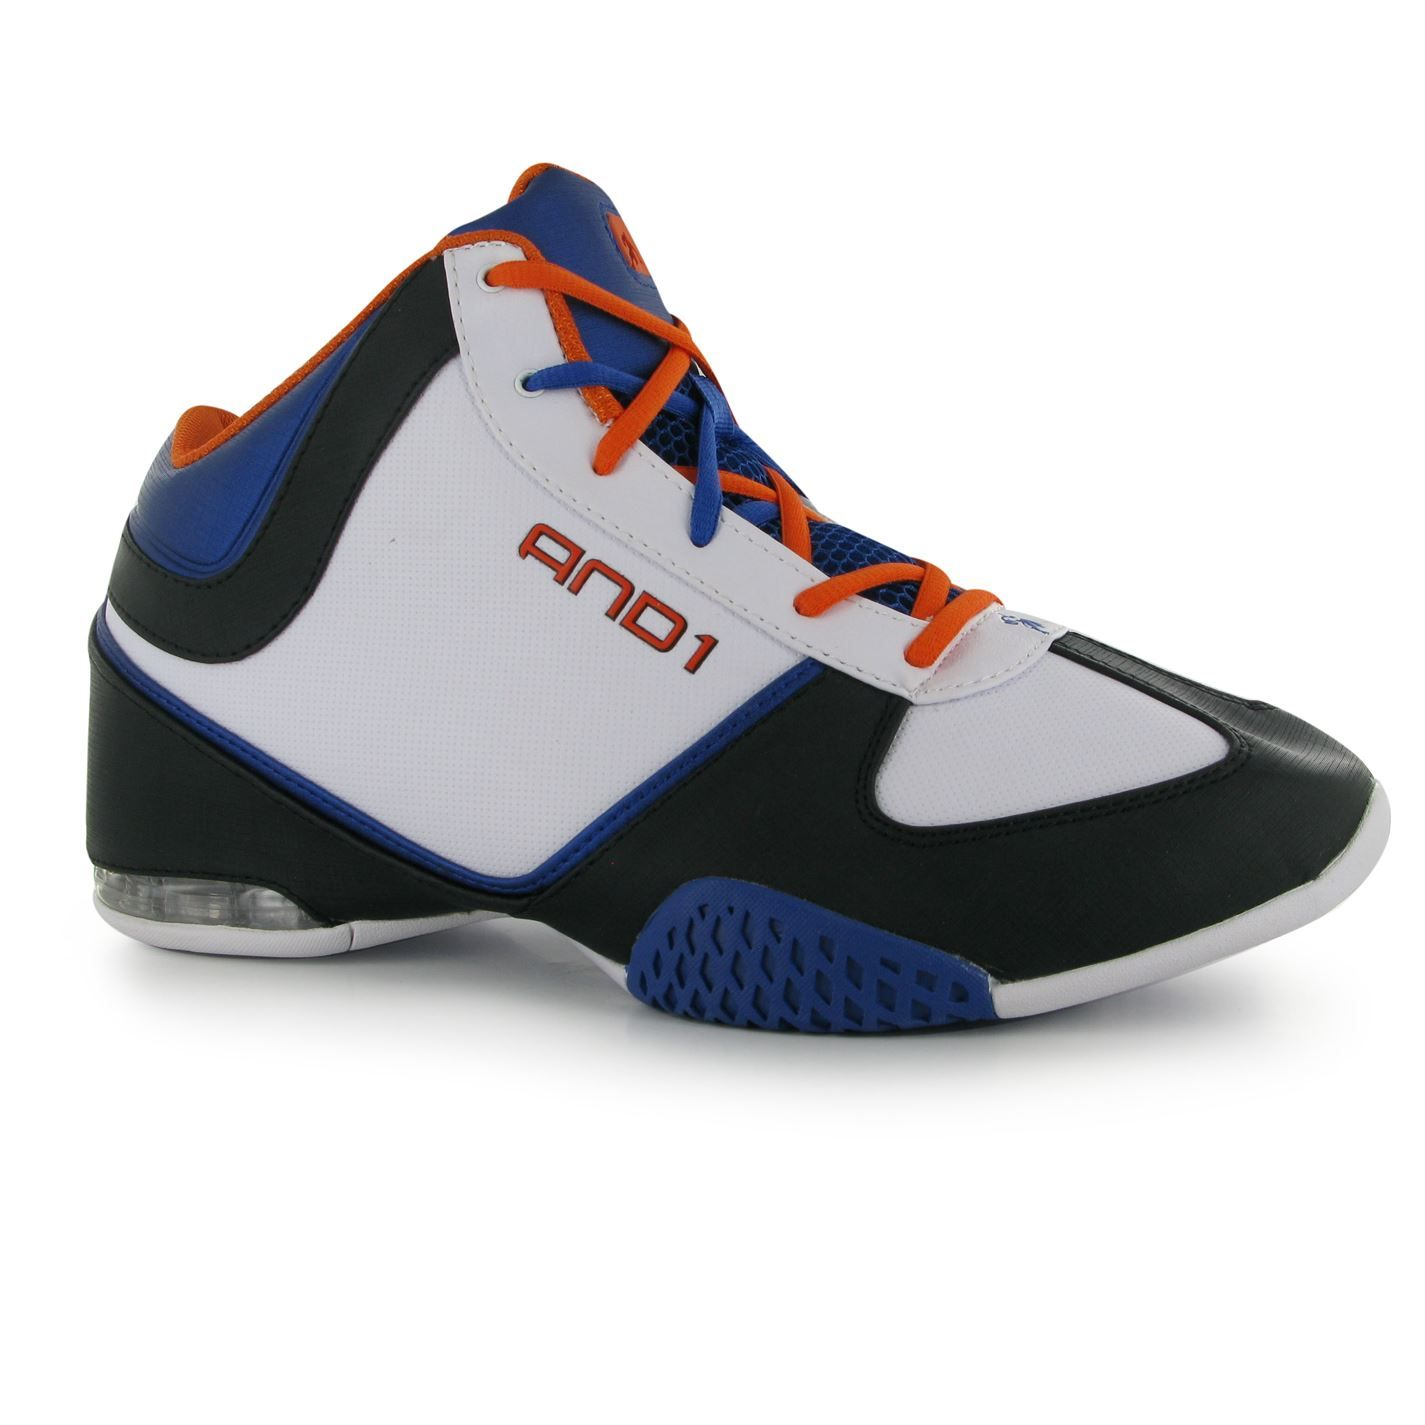 And1 | And1 Mucho Gusto Mid Junior Basketball Shoes | Basketball ...